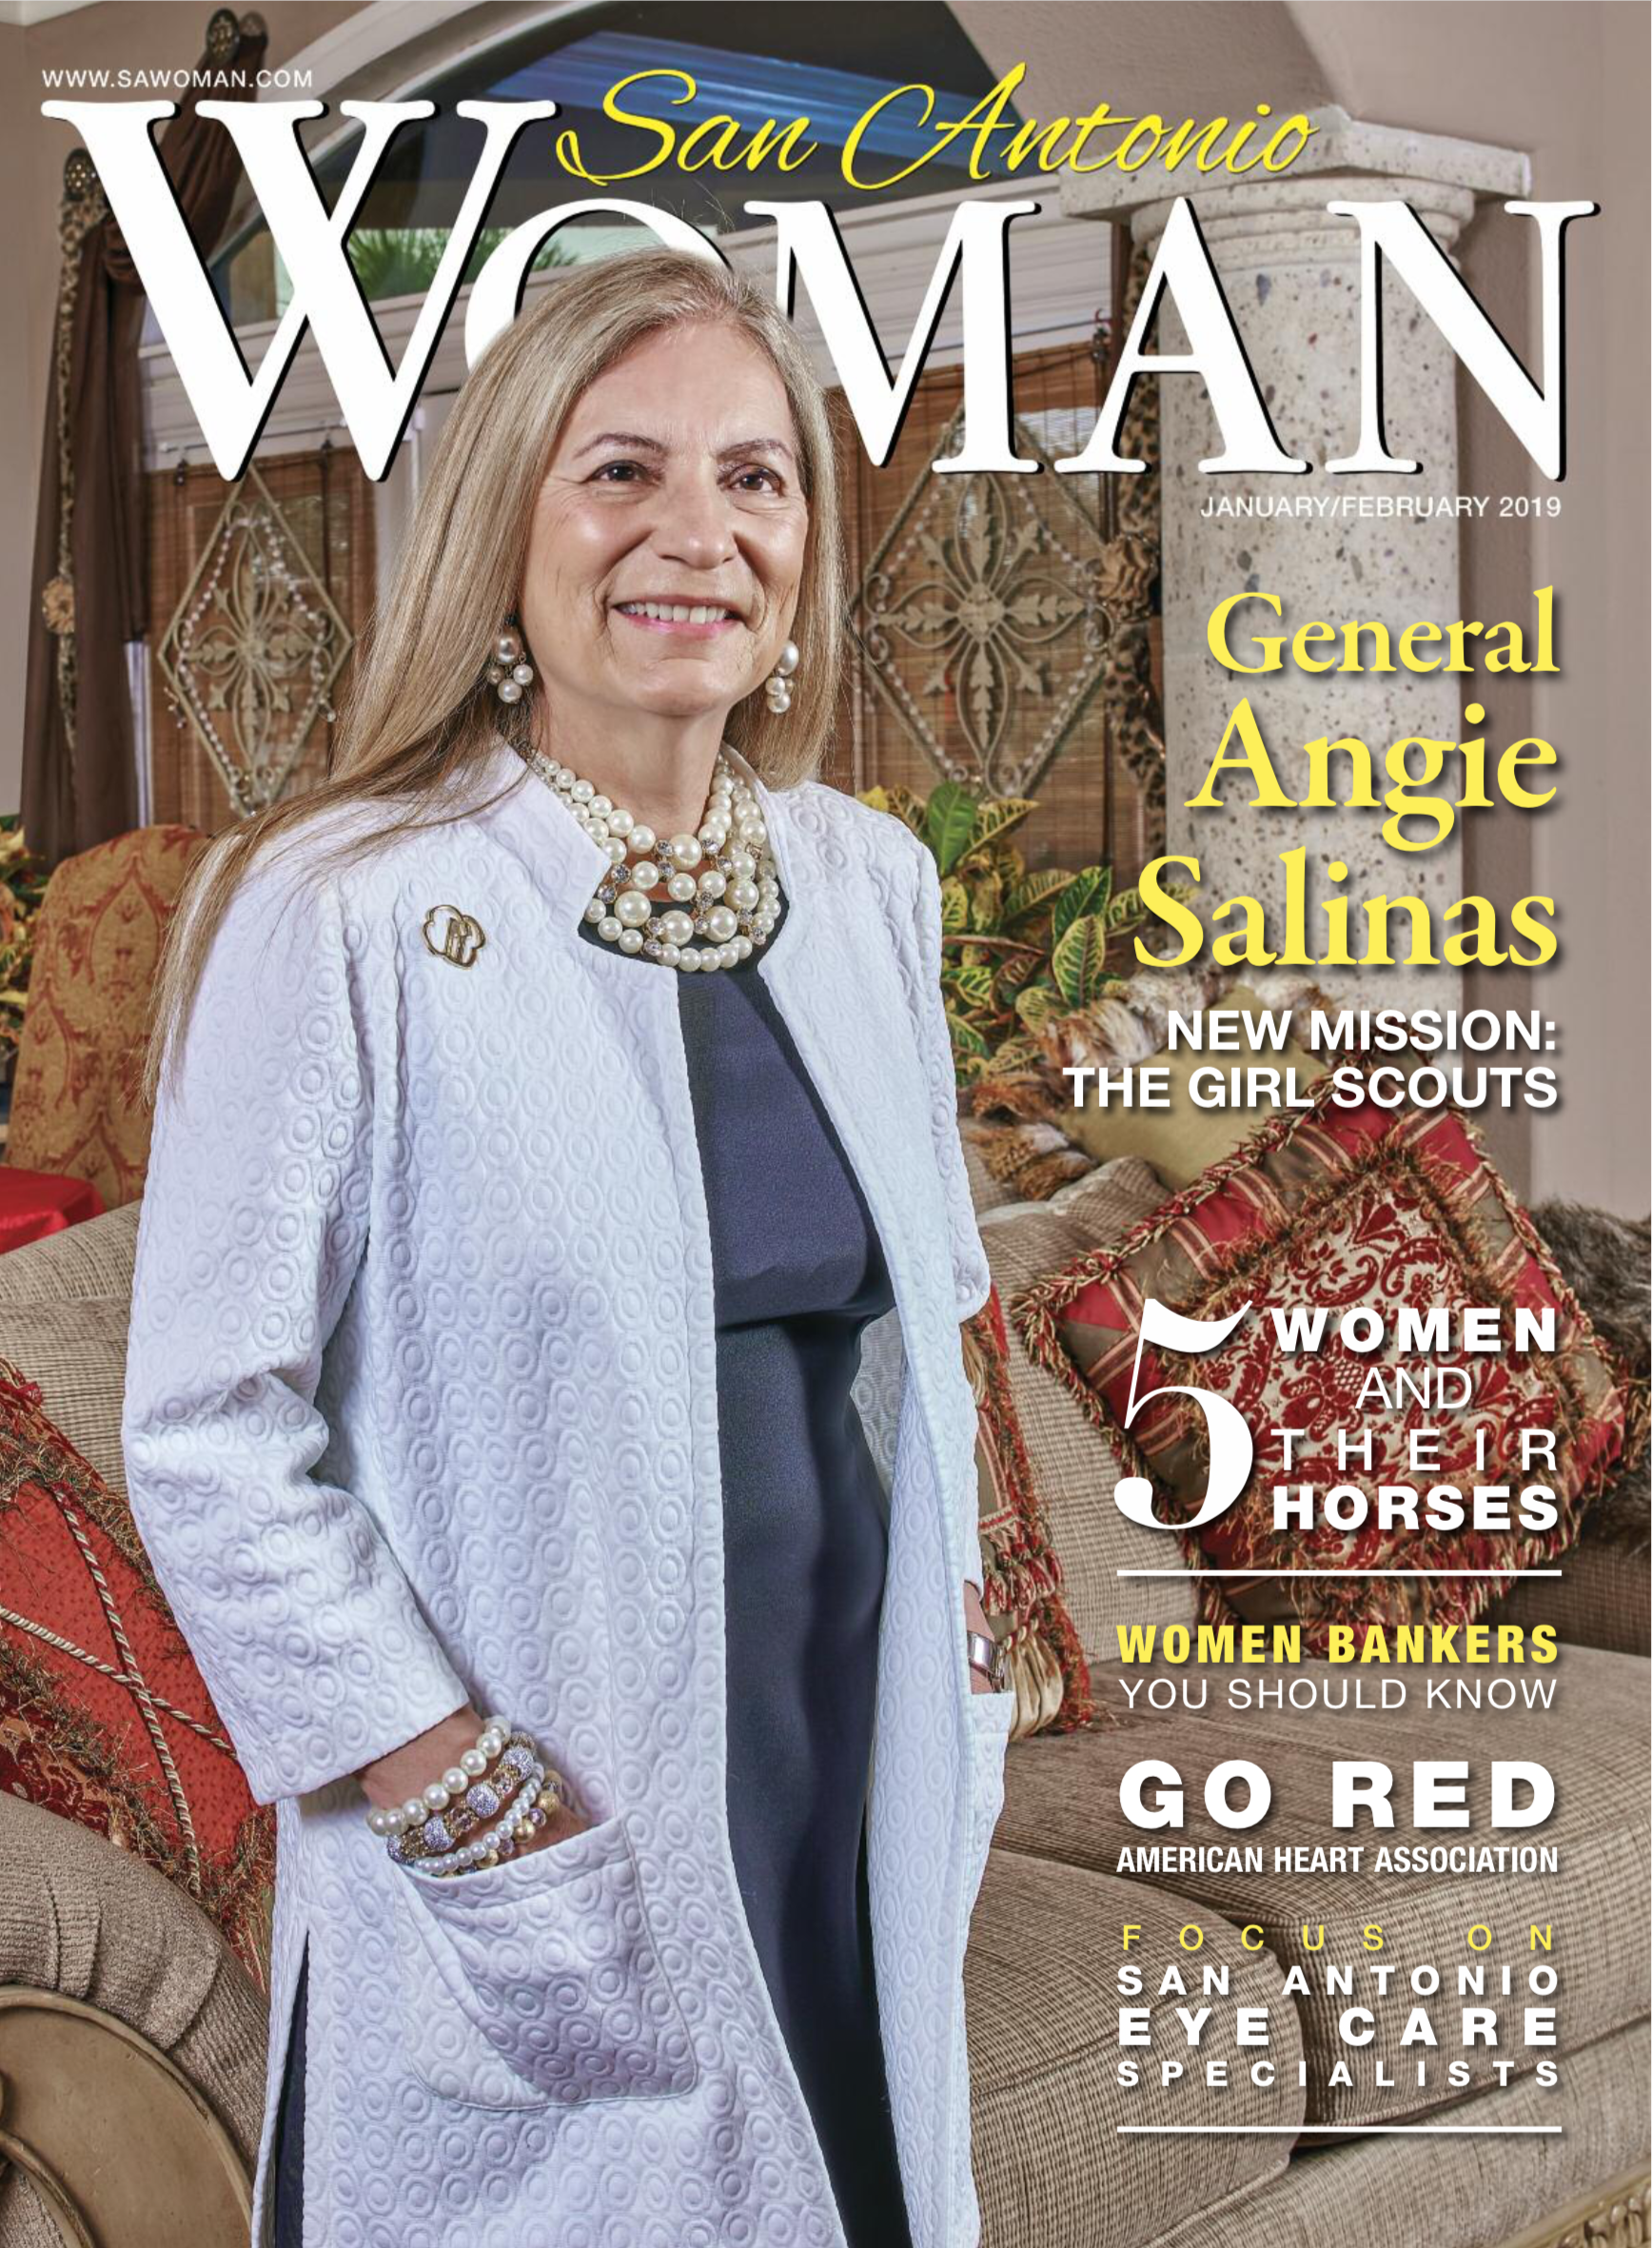 Cover of current San Antonio Woman magazine